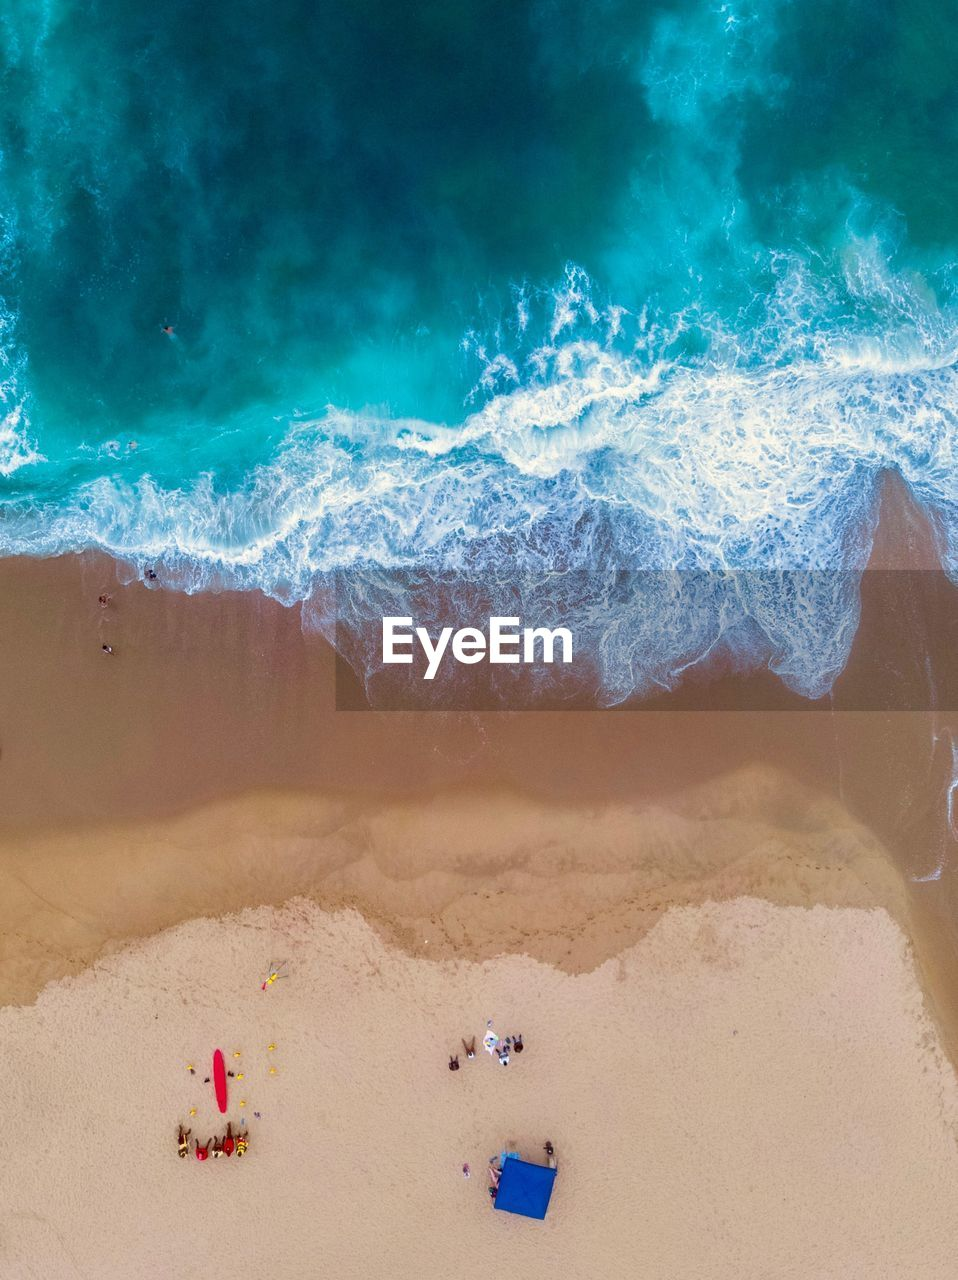 sea, land, sand, beach, water, wave, nature, aquatic sport, vacations, surfing, beauty in nature, trip, motion, holiday, high angle view, scenics - nature, sport, day, outdoors, power in nature